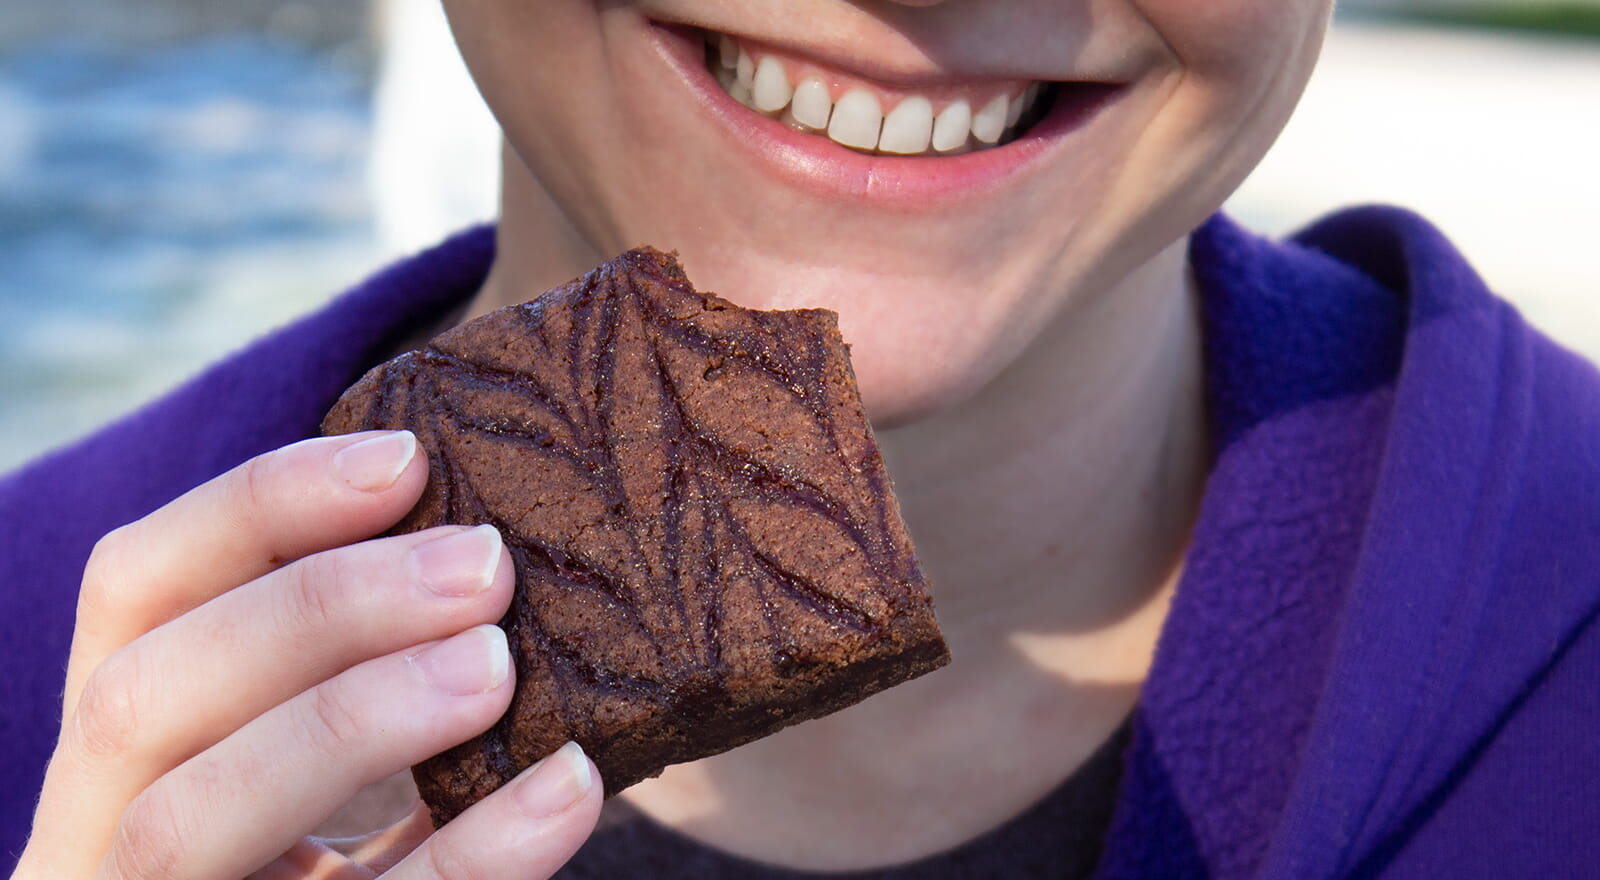 Smiling woman with a brownie